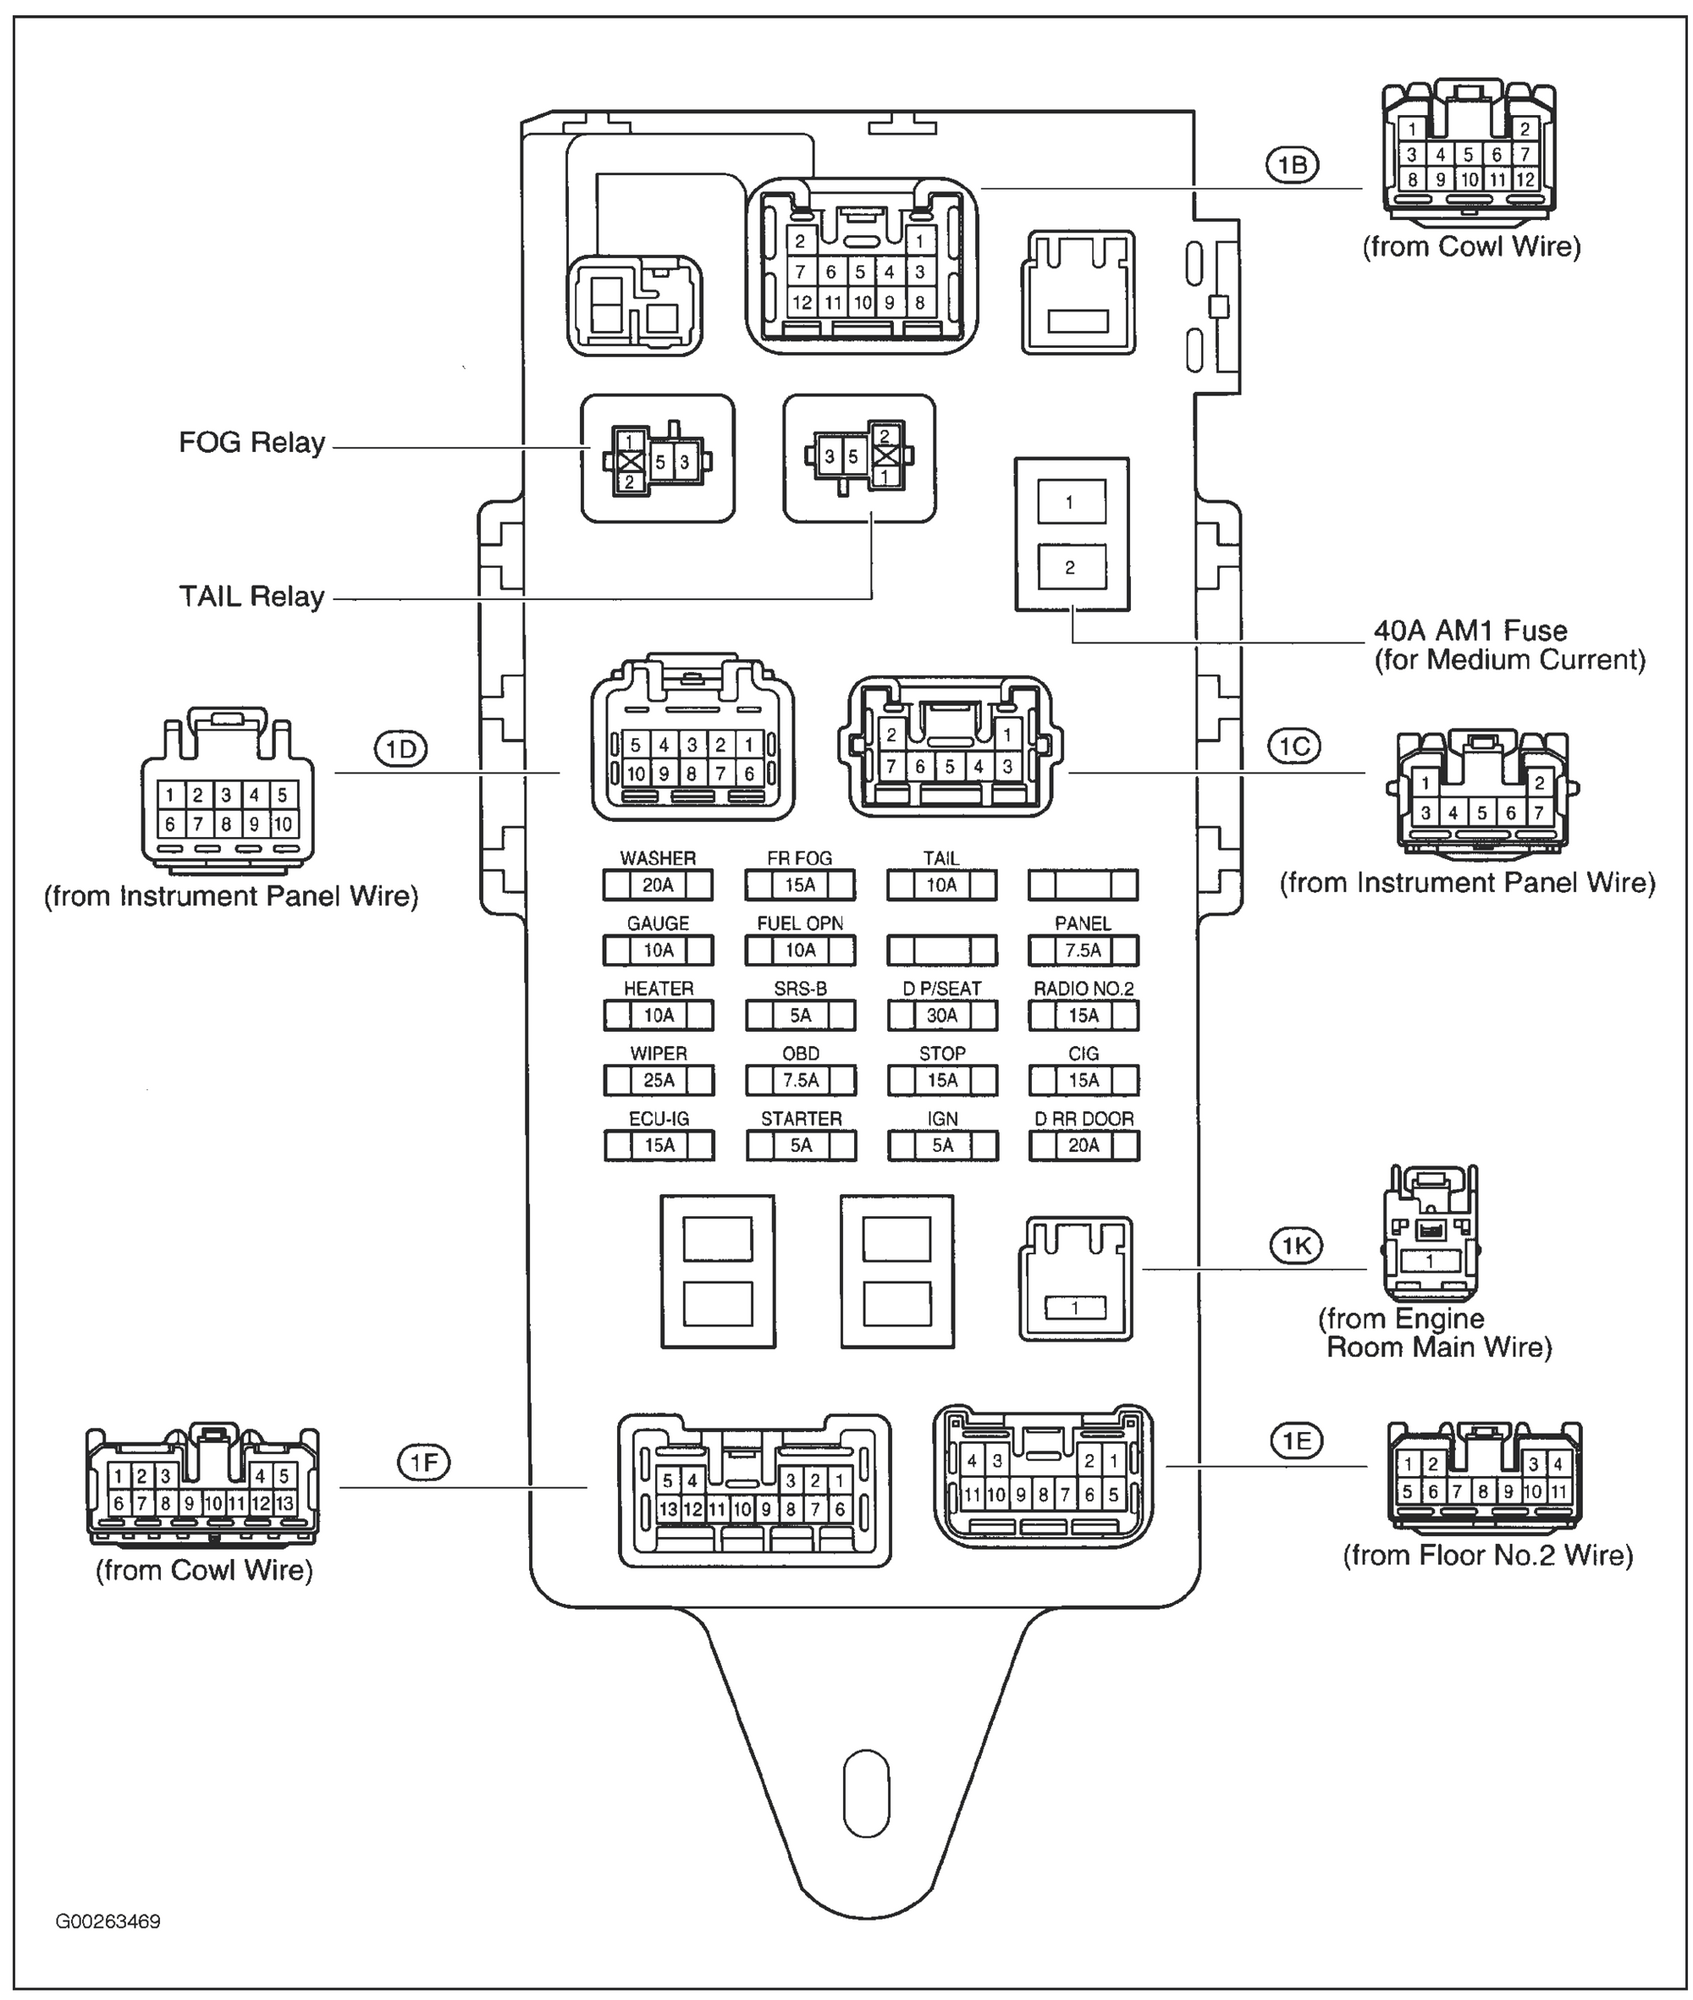 DIAGRAM] 2000 Lexus Gs 300 Fuse Diagram FULL Version HD Quality Fuse  Diagram - DIAGRAMDEAL.CLUB-RONSARD.FRClub Ronsard